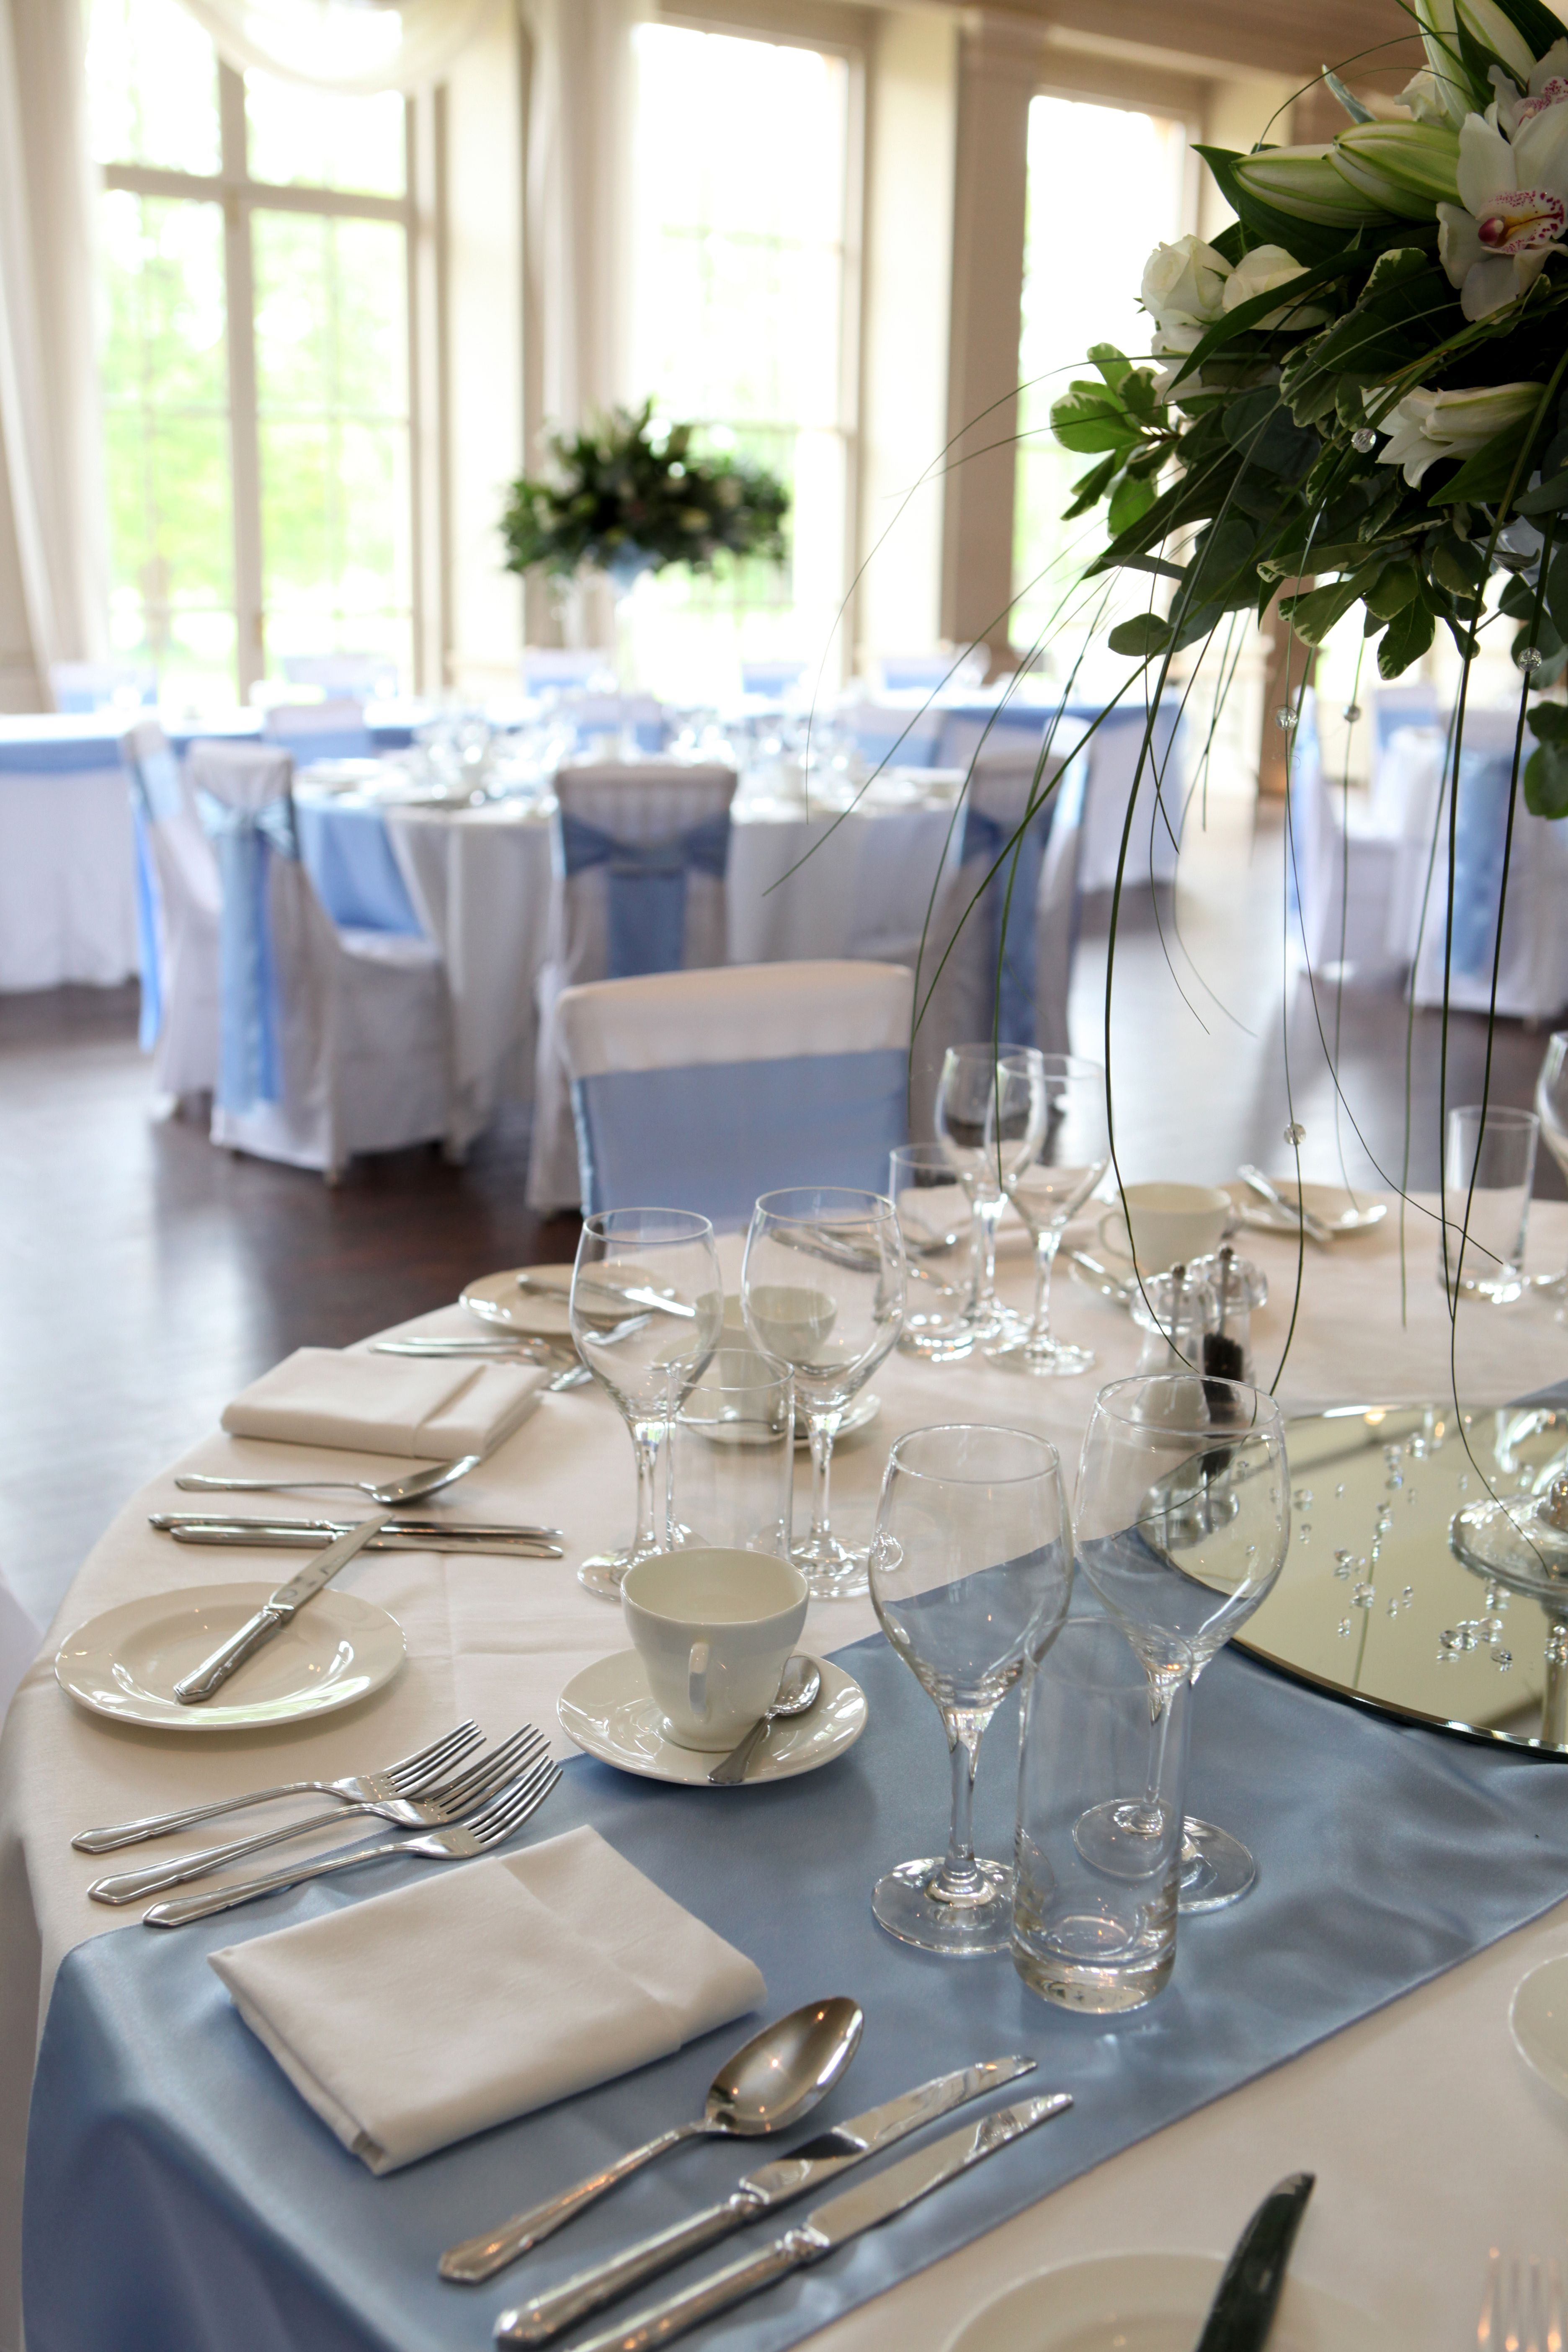 Outstanding Sky Blue Table Runner And Sashes Stubton Hall Interior Design Ideas Clesiryabchikinfo